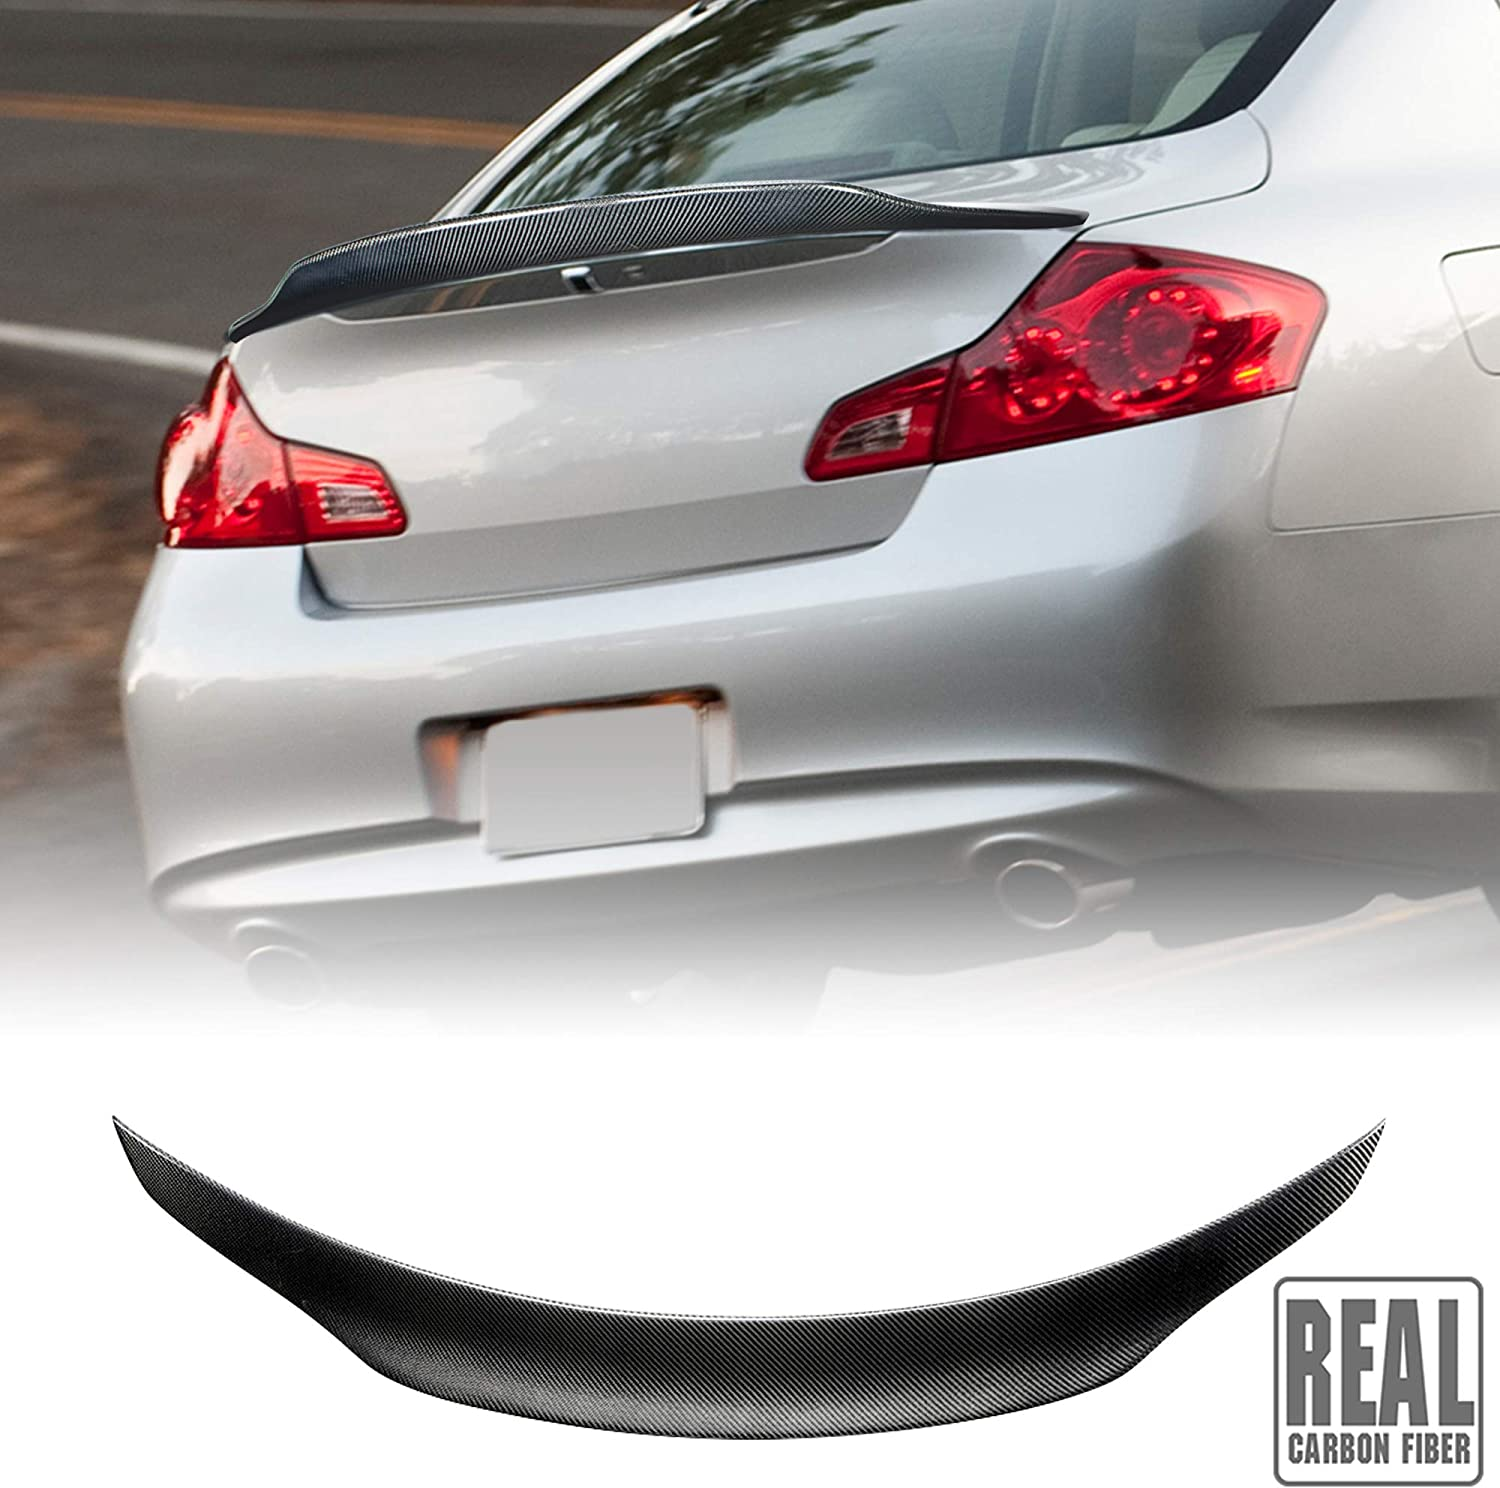 Special sale free shipping item AeroBon Real Carbon Fiber Trunk Spoiler with Compatible 2006-201